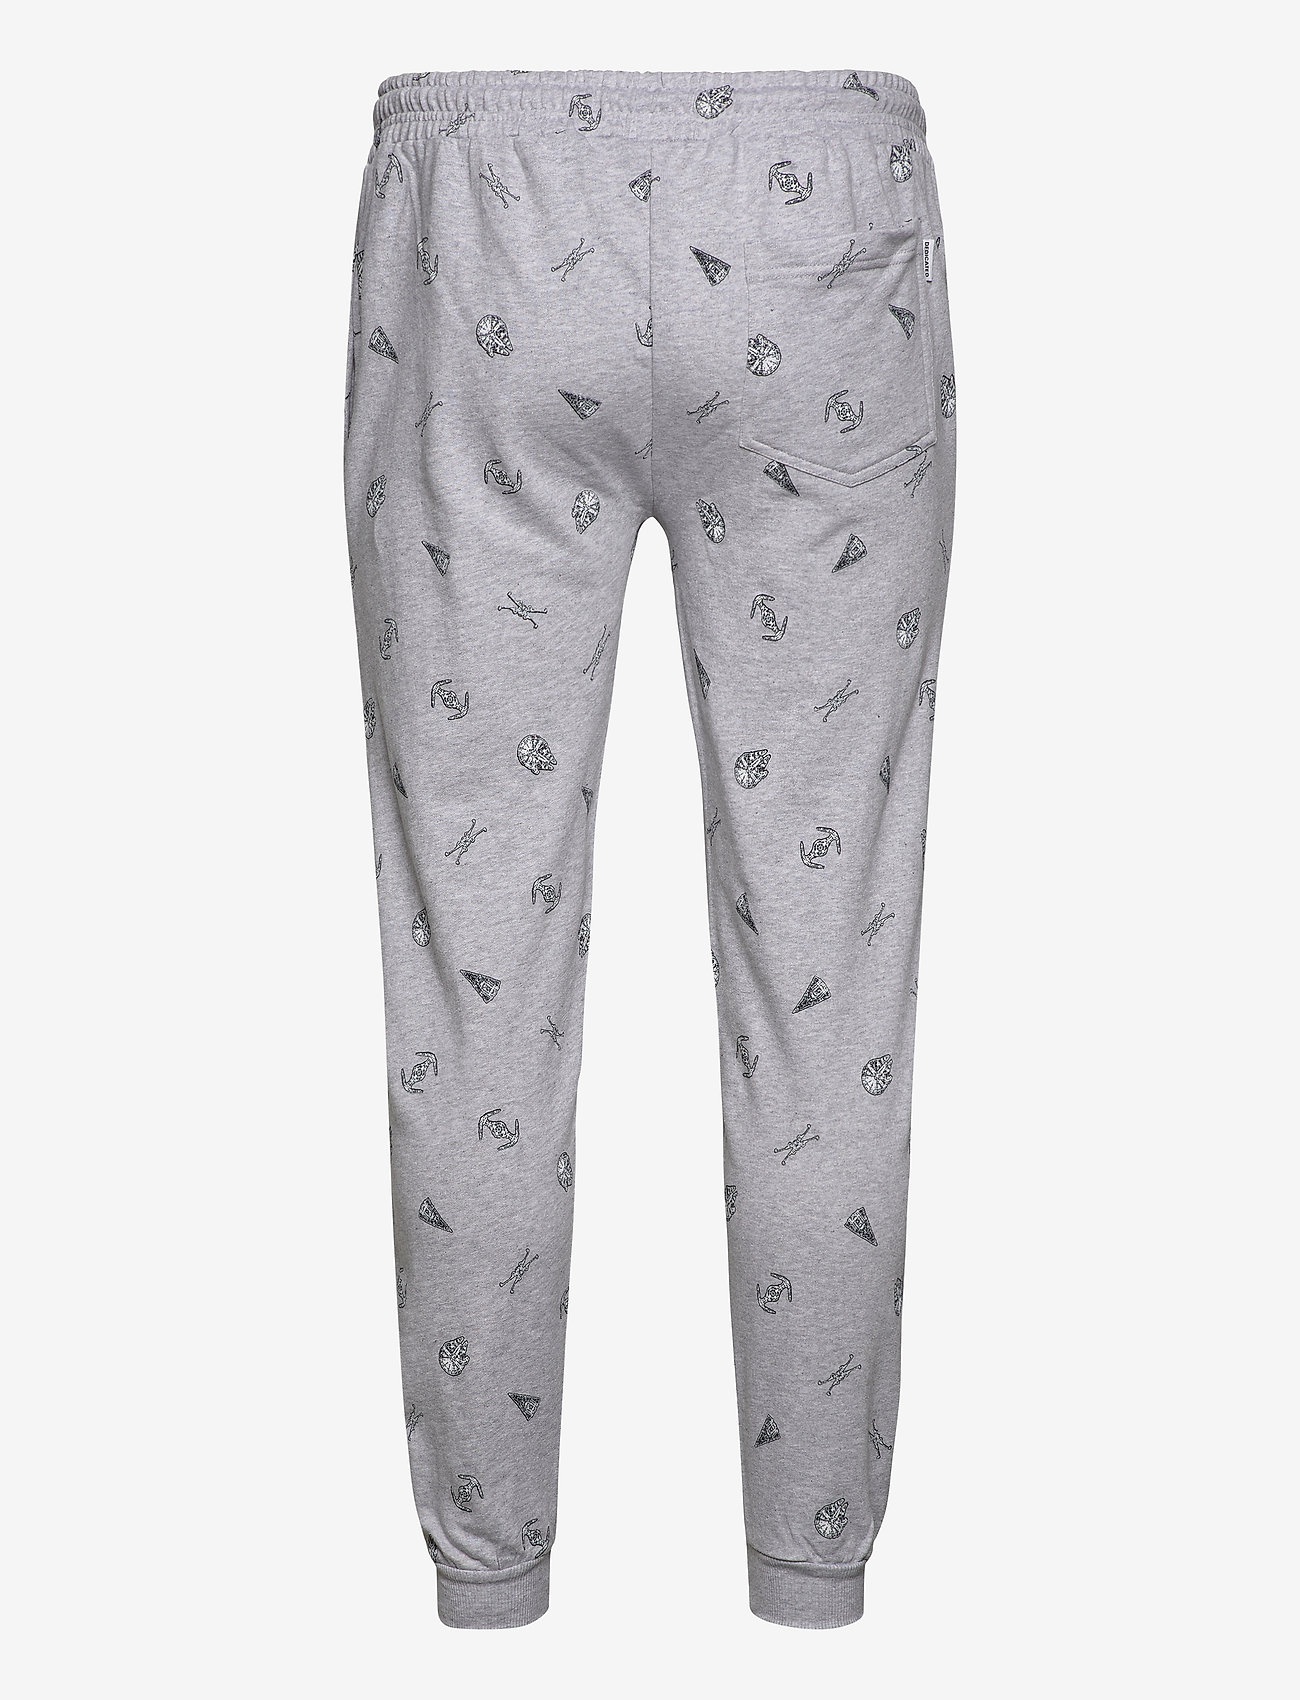 Joggers Lund Star Wars Space Ships (Grey Melange) (32.97 €) - DEDICATED BsiOA